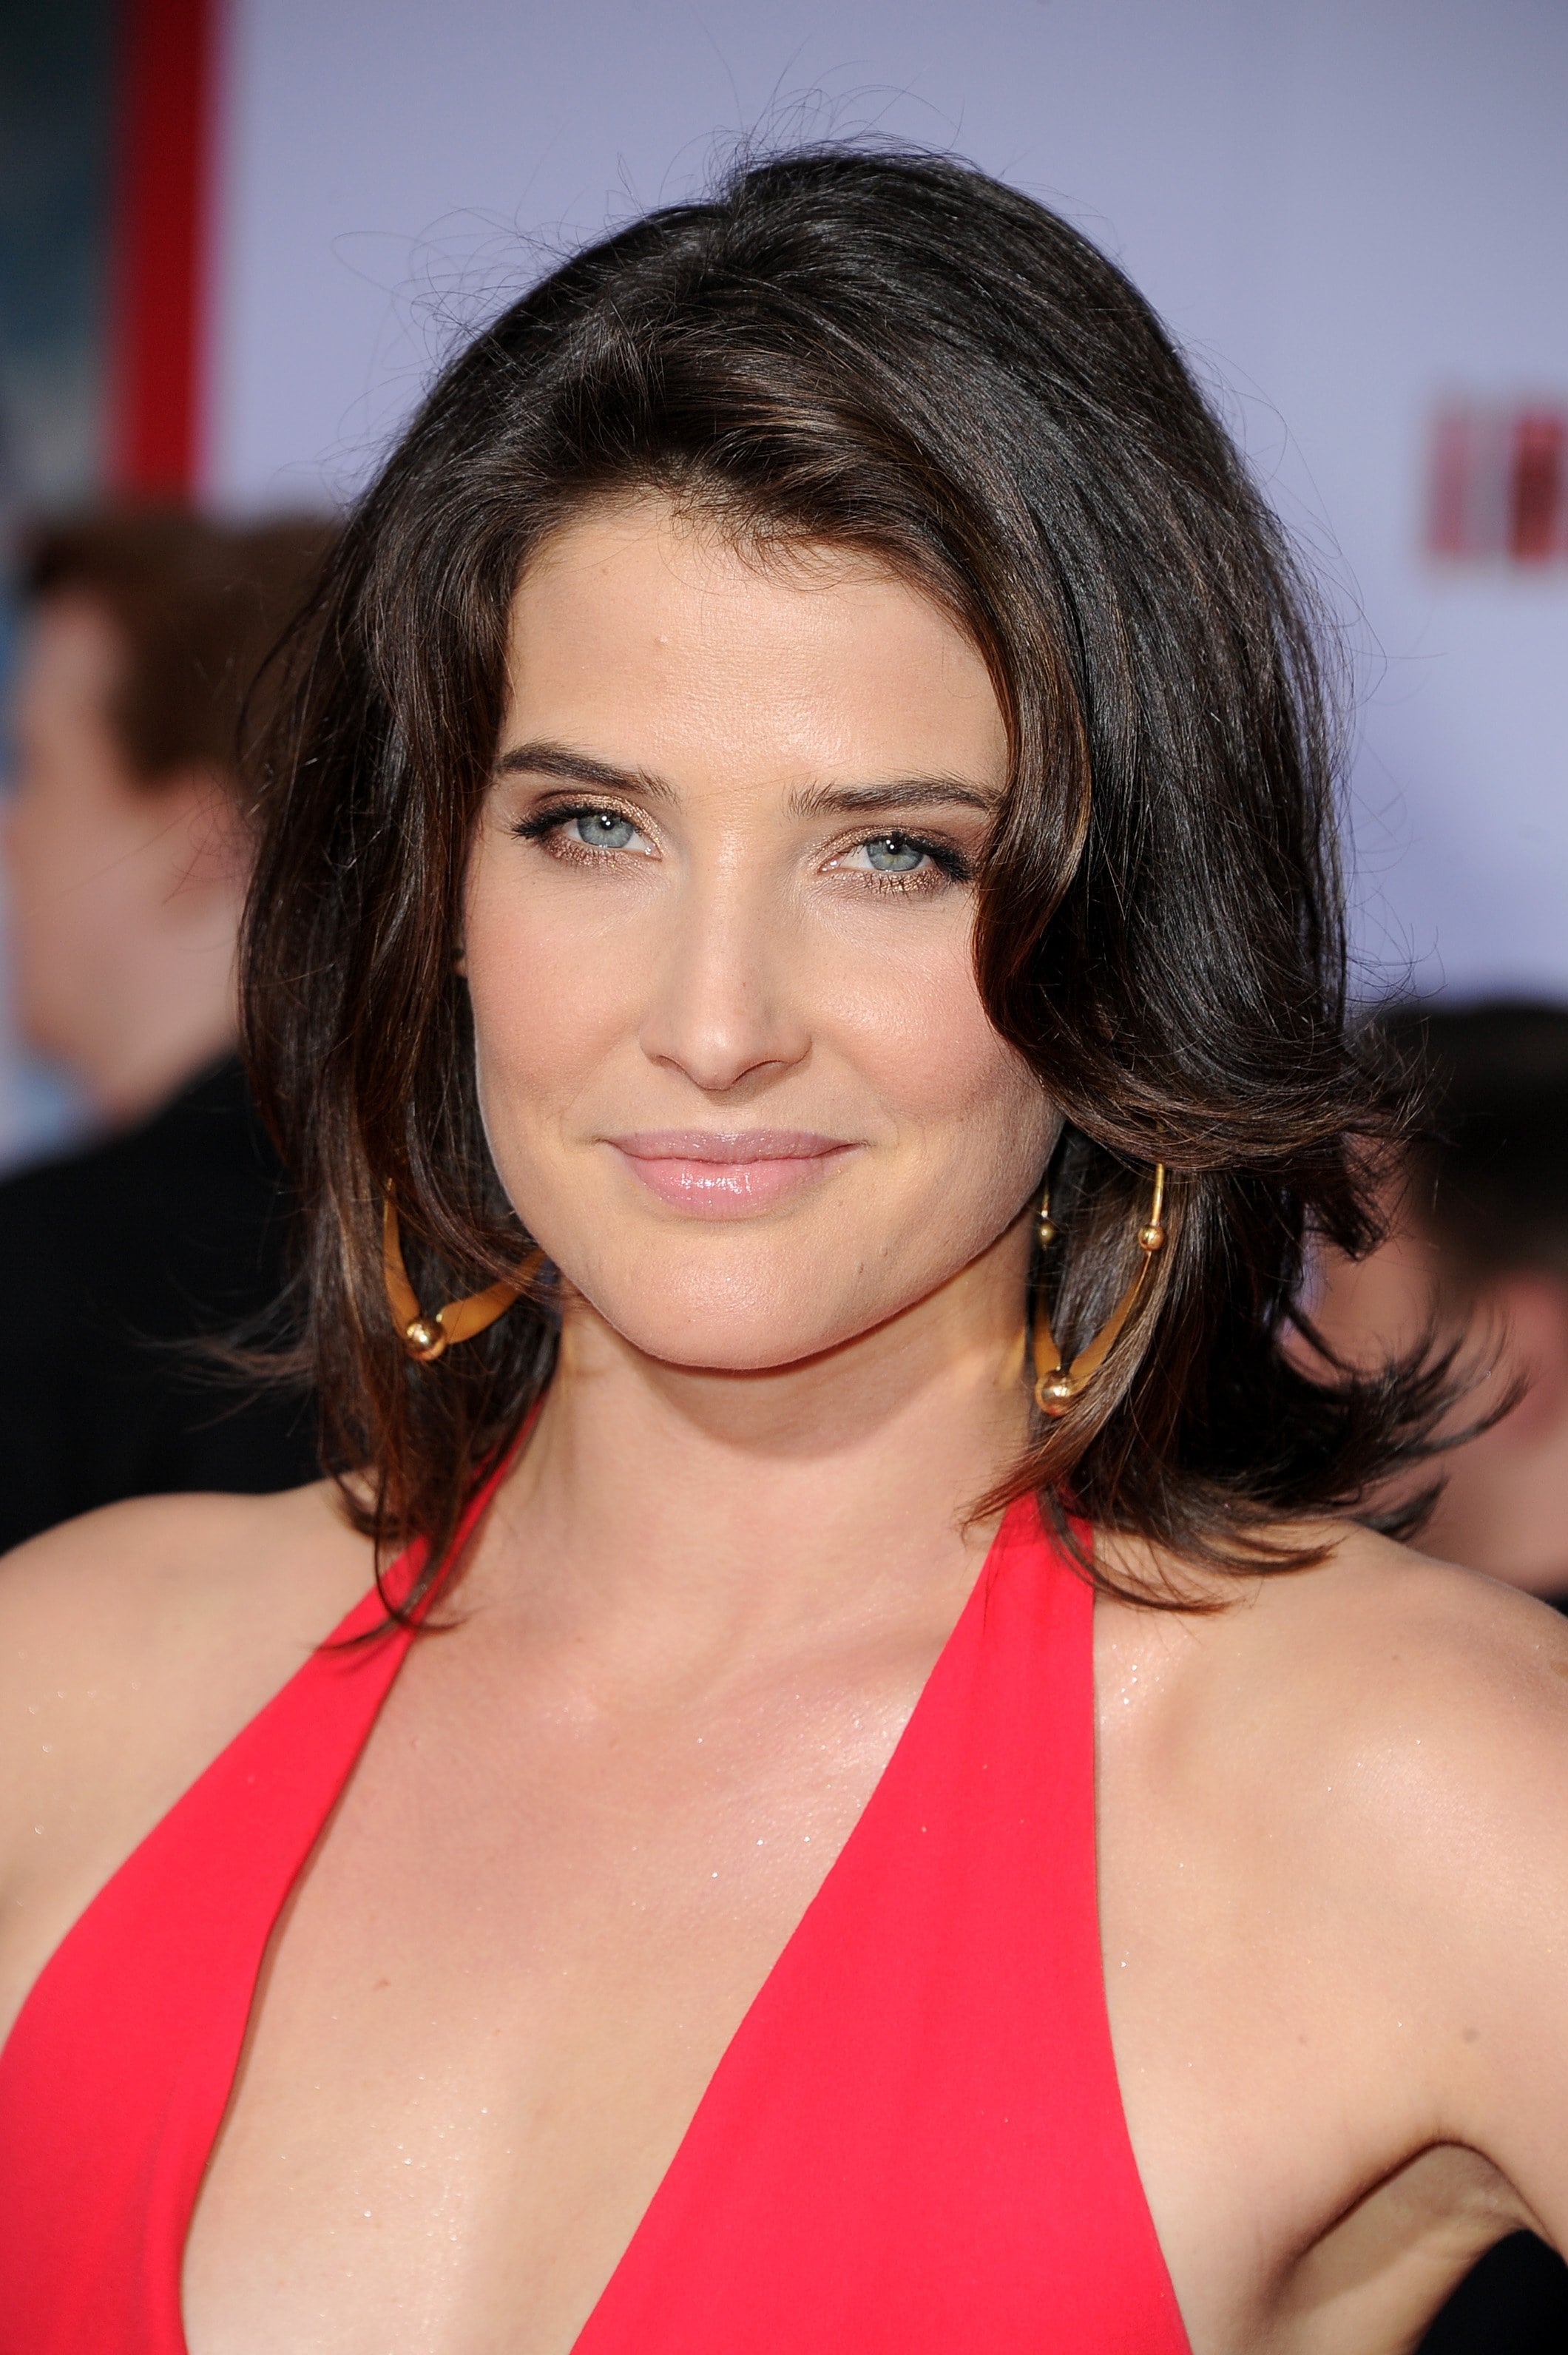 Cobie Smulders For mobile